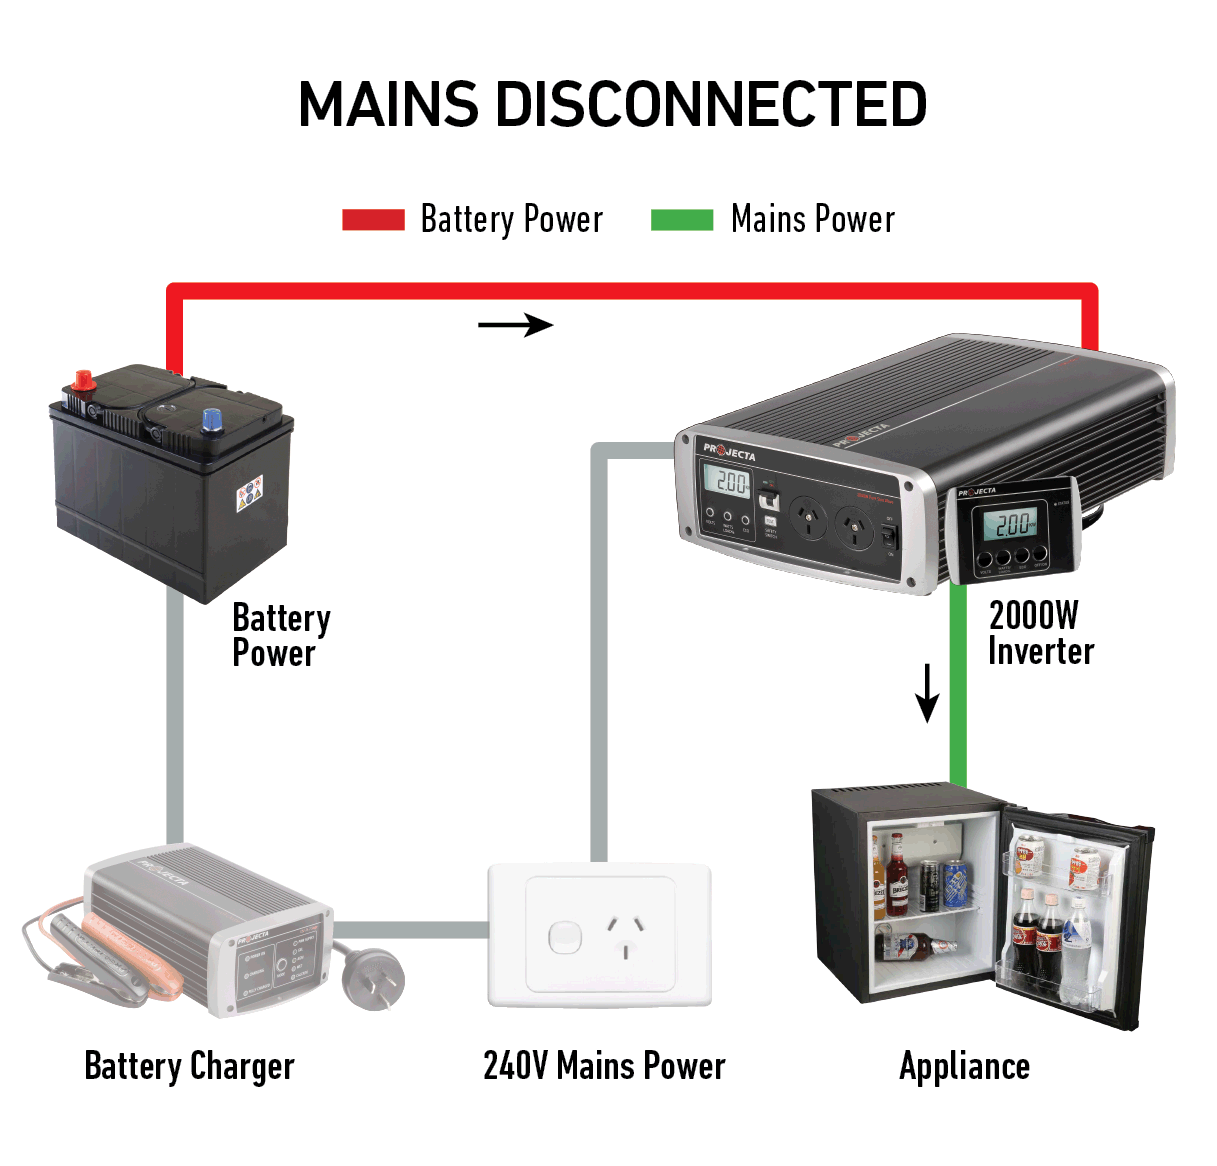 AC_transfer_diagram_disconnected.png